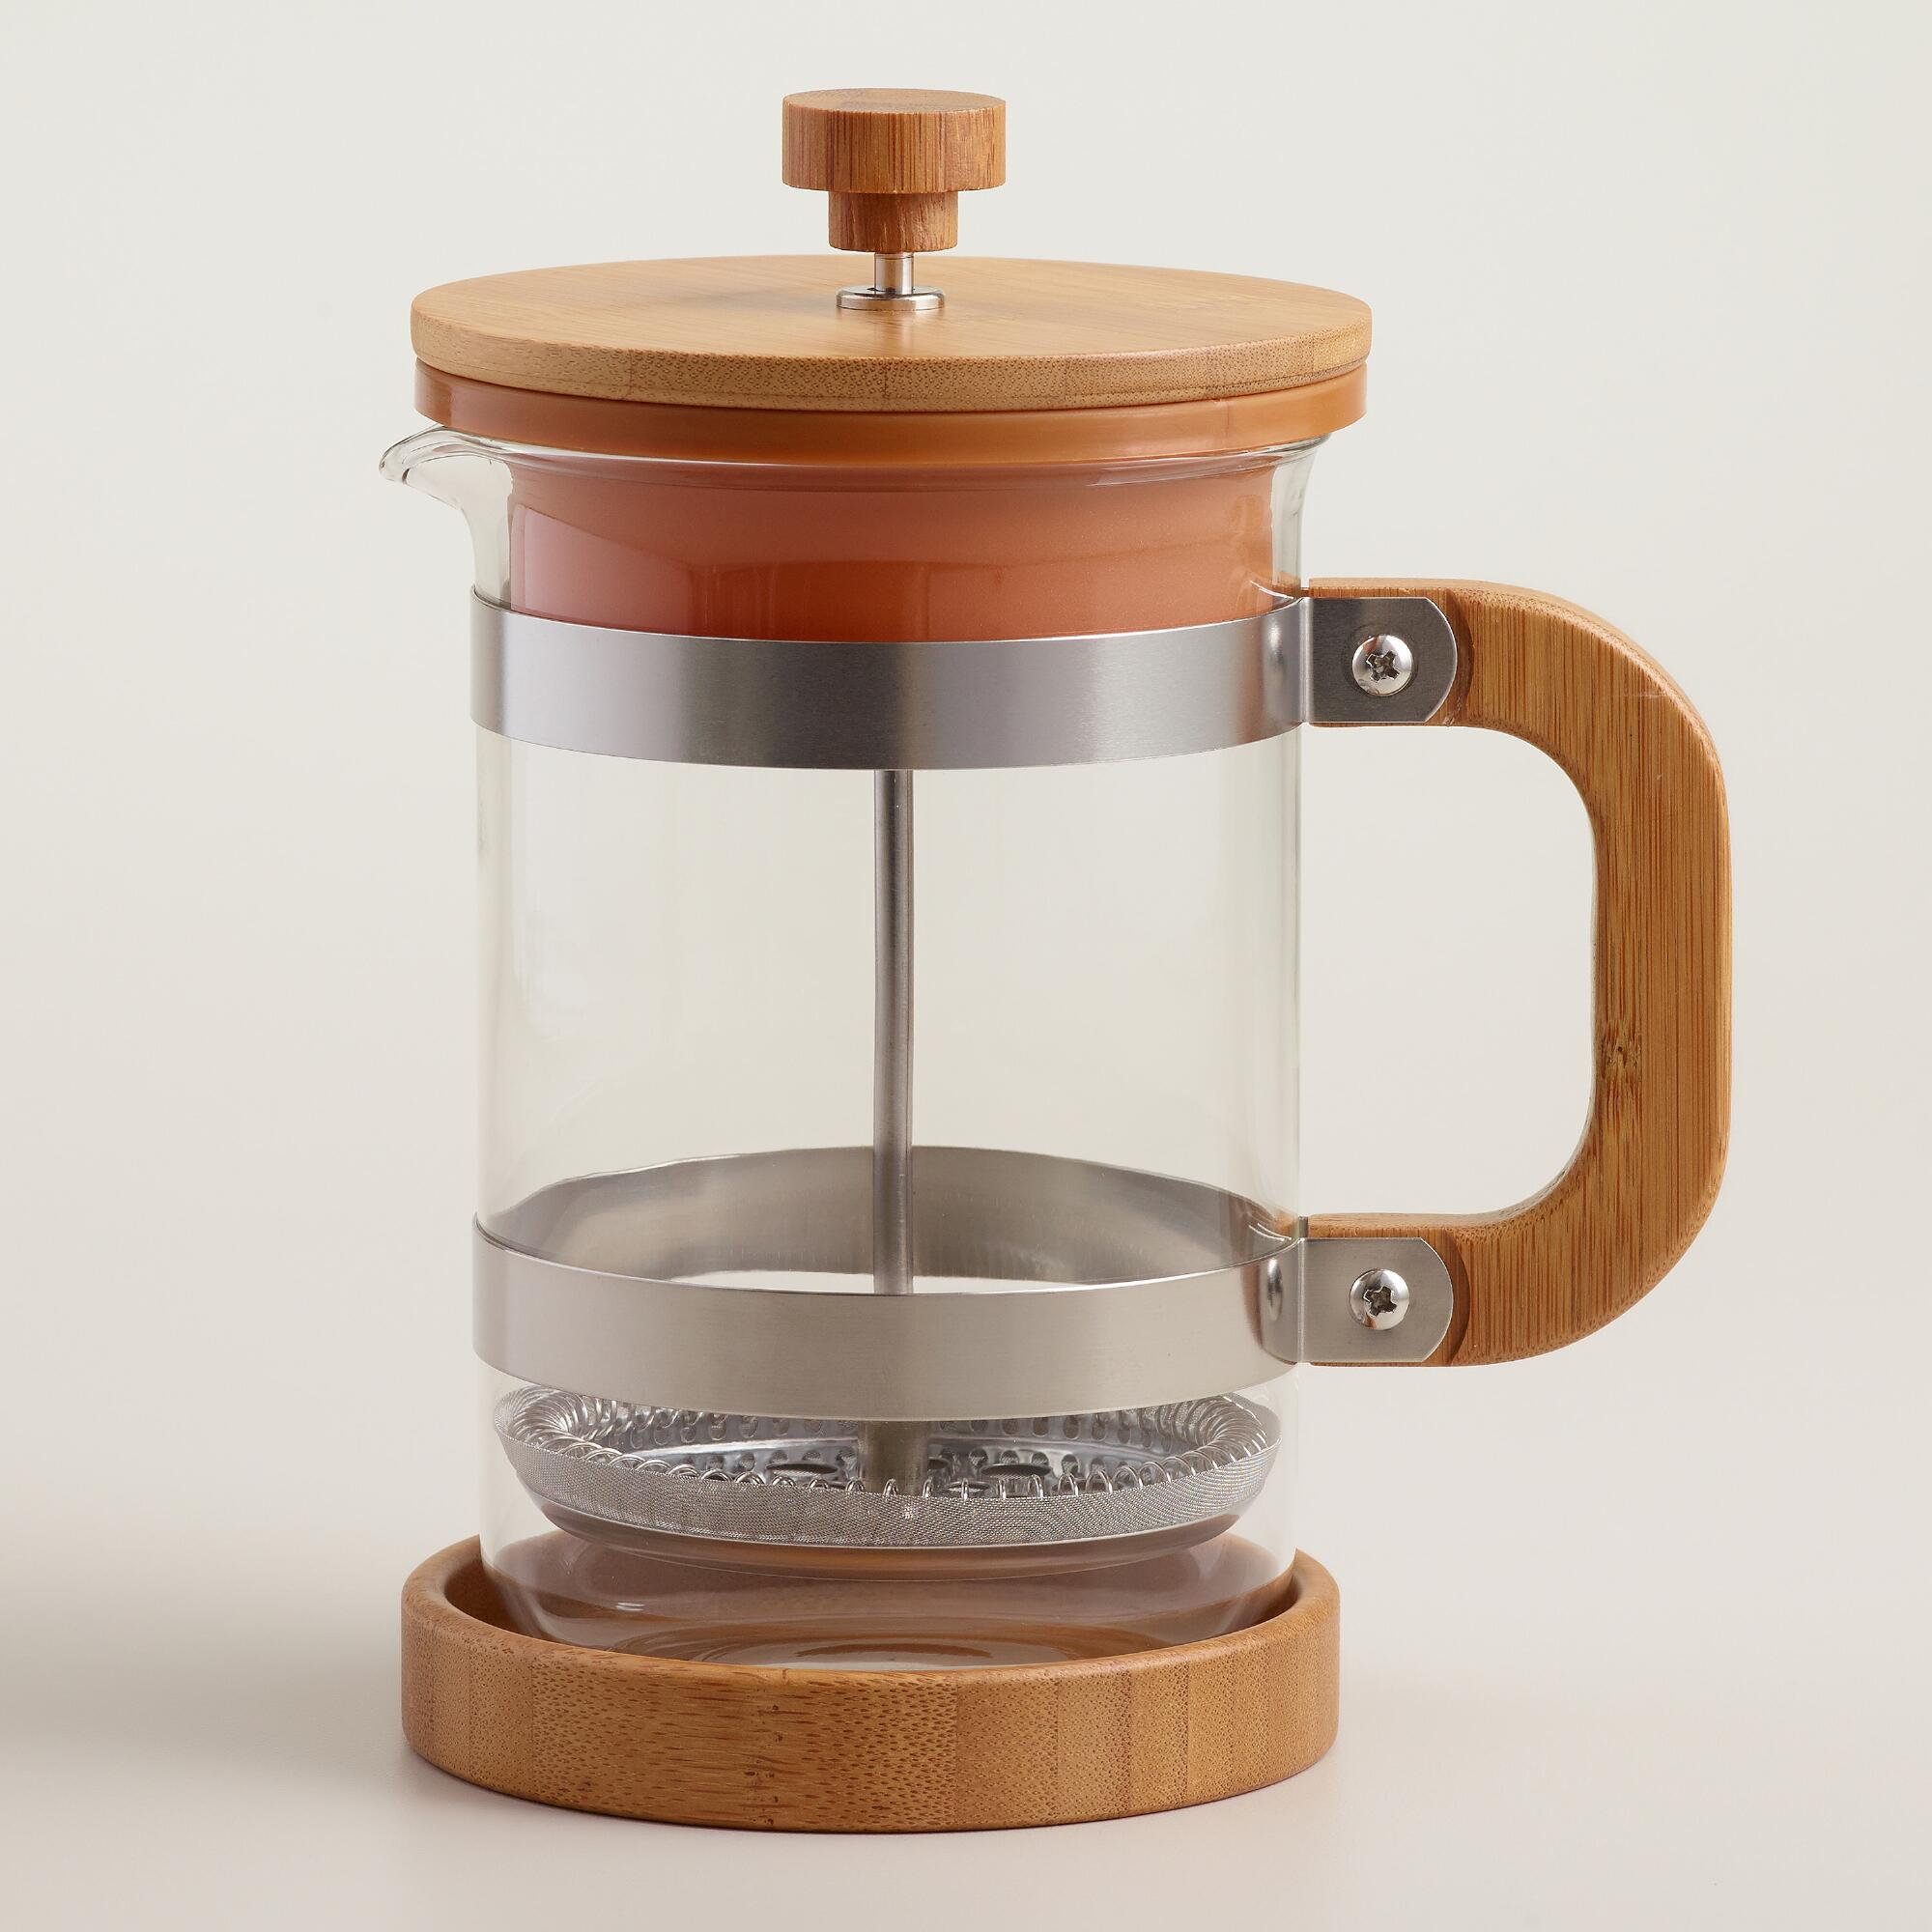 Bed bath beyond french press - Bed Bath Beyond French Press 6